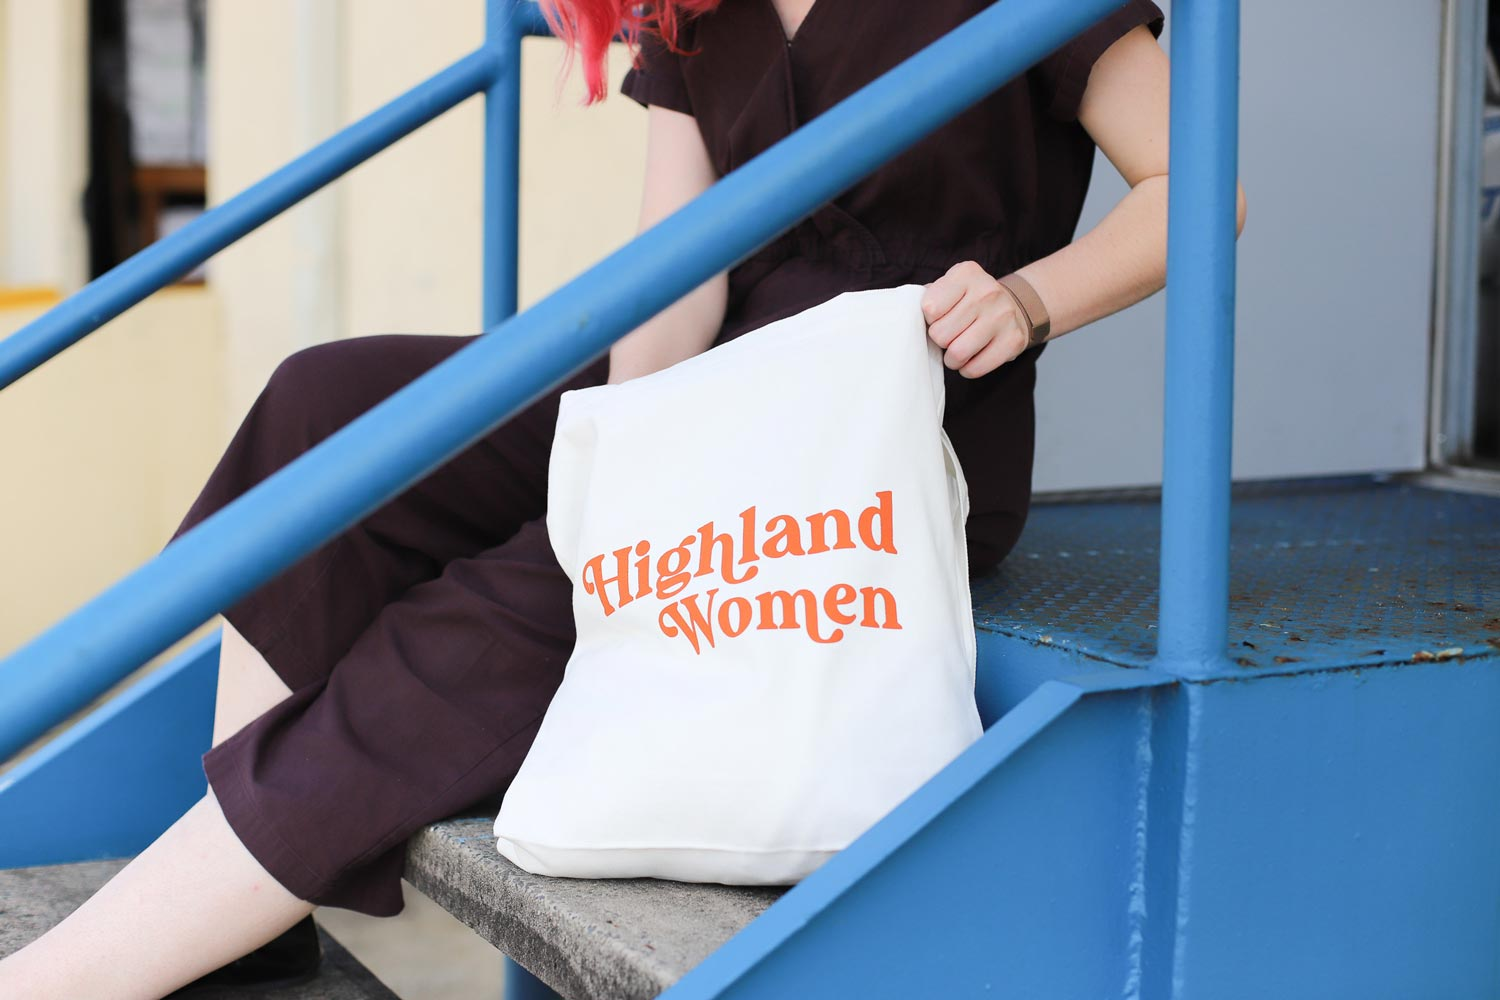 Woman in a dark romper on steps holding a white custom tote